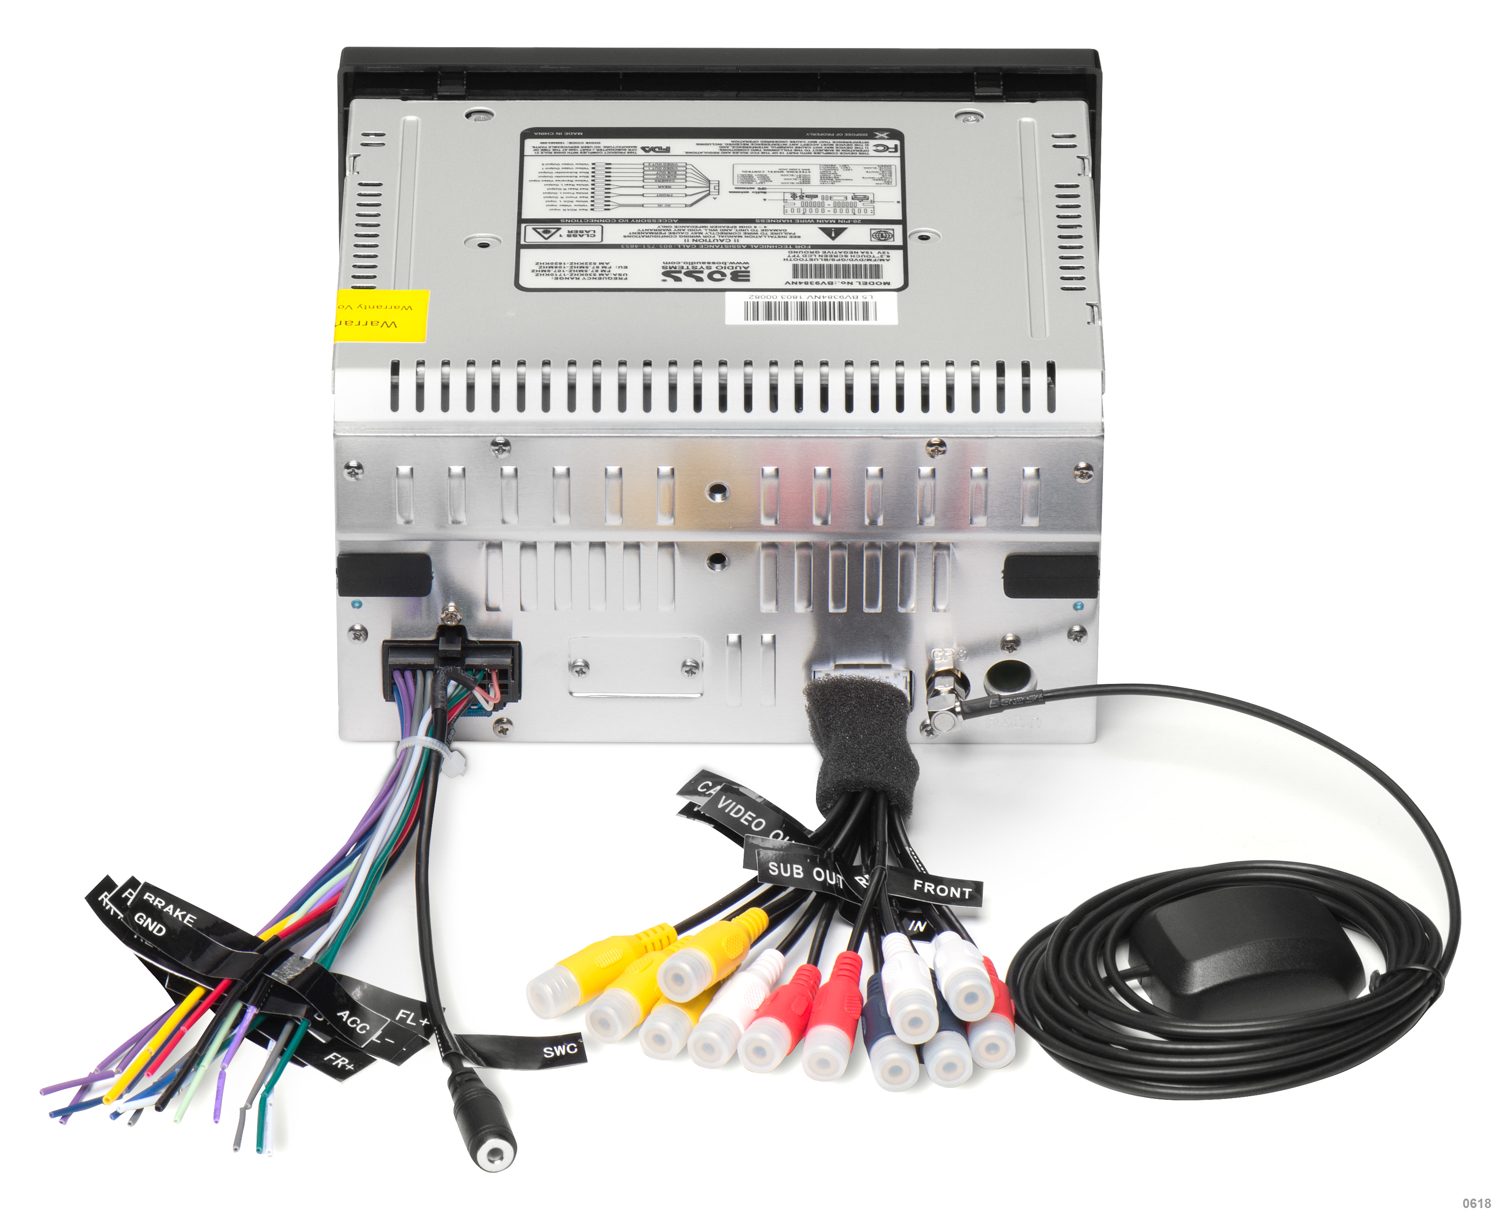 hight resolution of boss radio bv9364b wiring harness